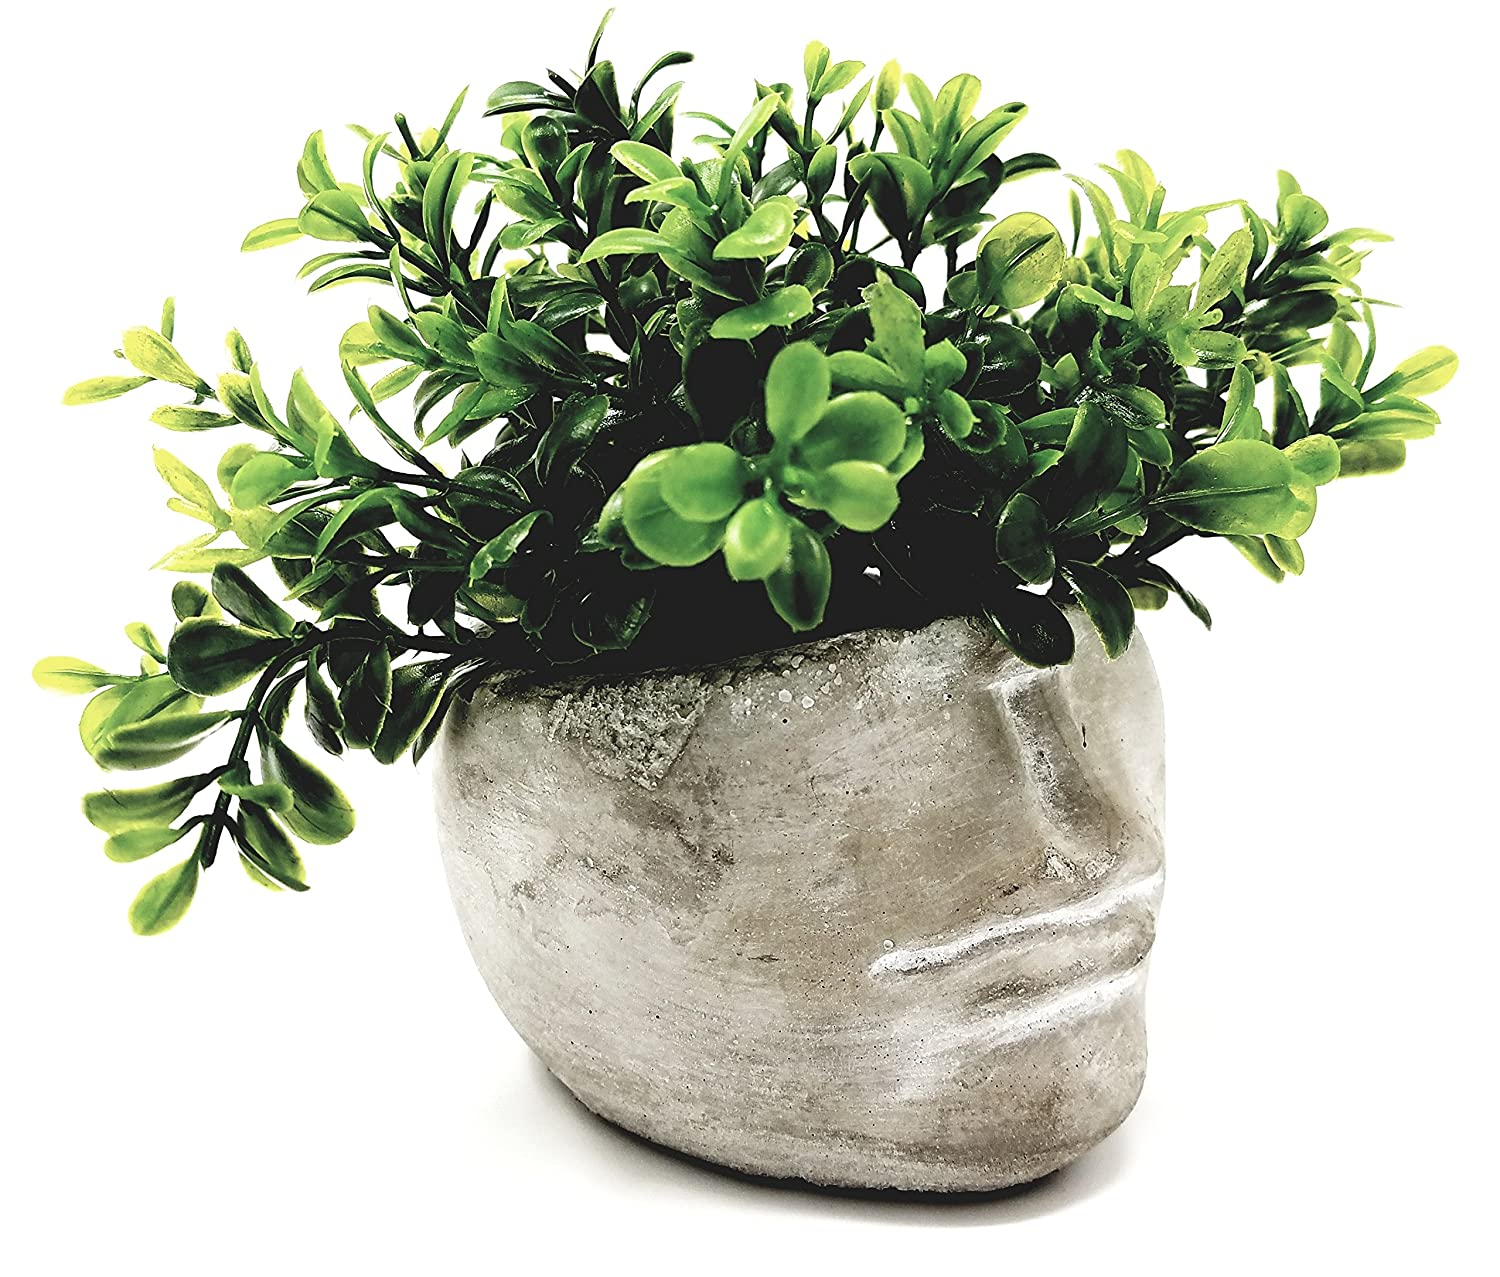 Succulent Planter 4 Inch Modern Cement Indoor Outdoor Planter Face Pot for Home or Office Great for Succulents, Cactus, Aloe, Moss, Ferns and More 1